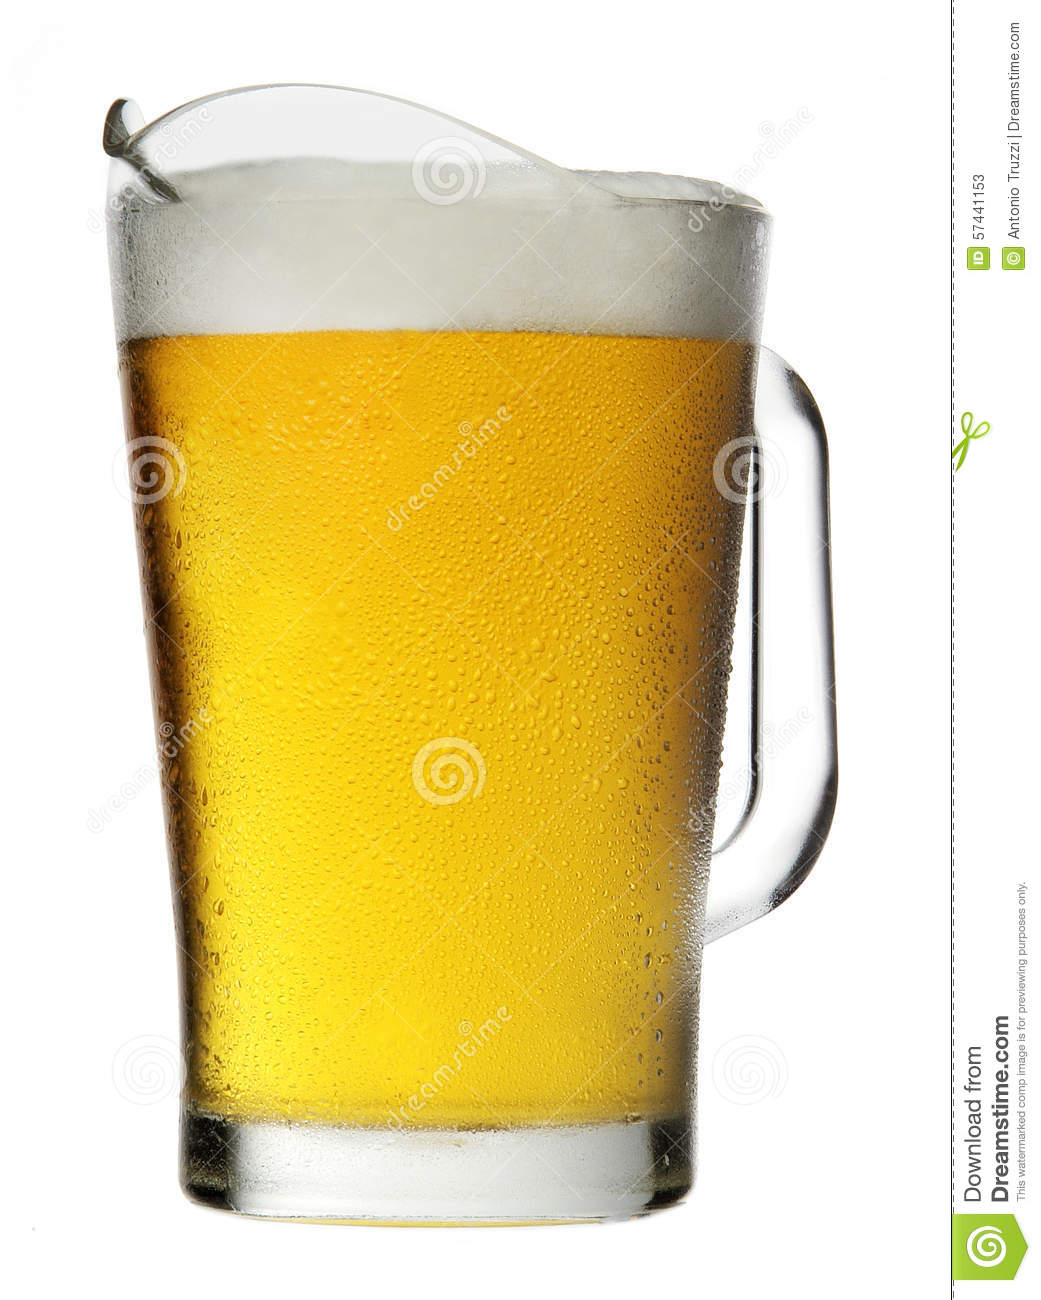 Pitcher Of Beer With Foam Stock Photo - Image: 57441153